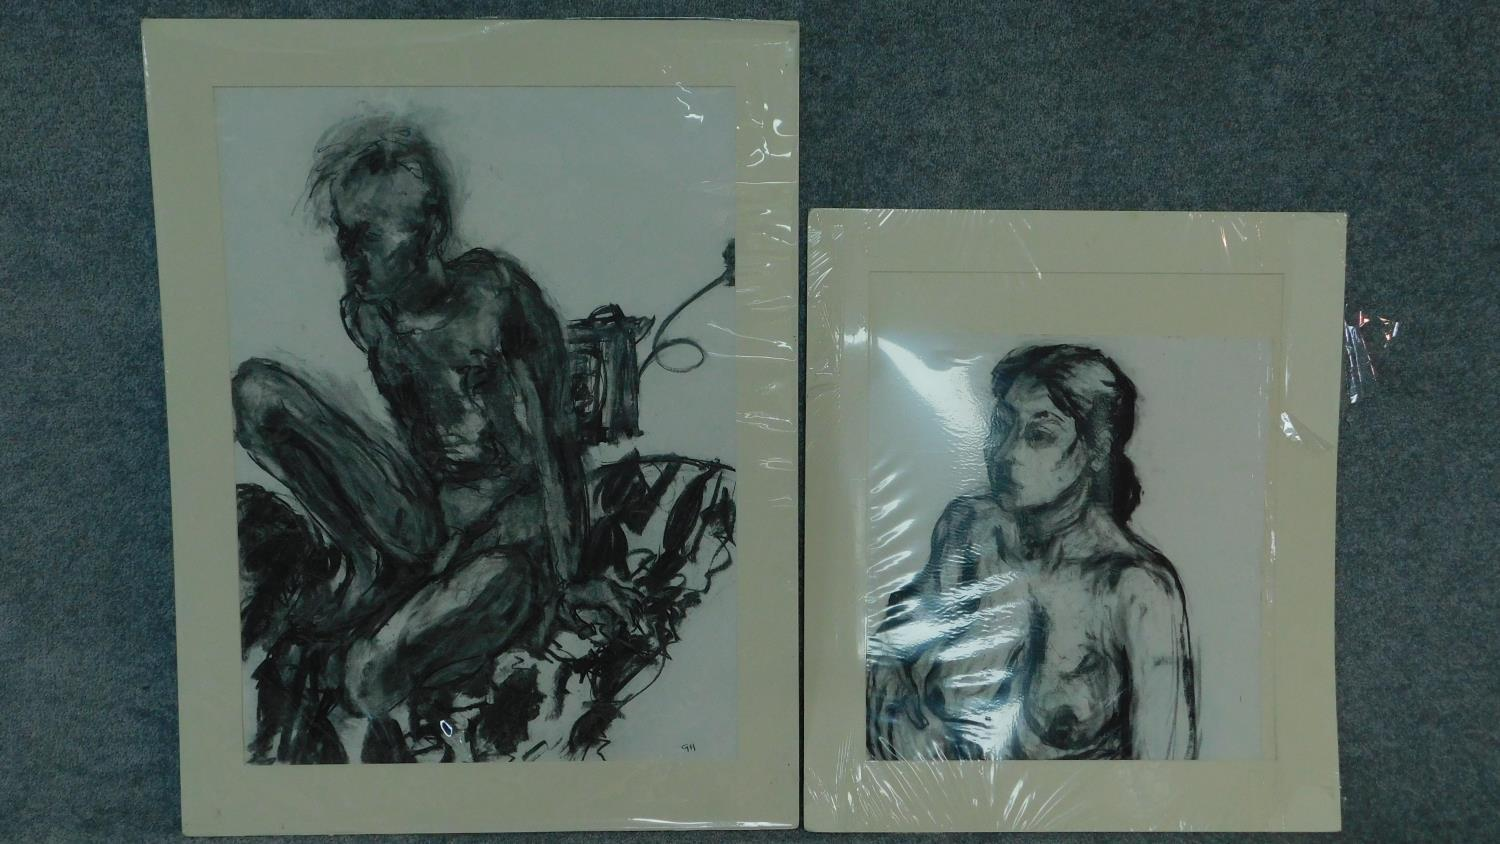 Two unframed mounted charcoal sketches, nude studies, monogrammed G H - 90x70 (largest)